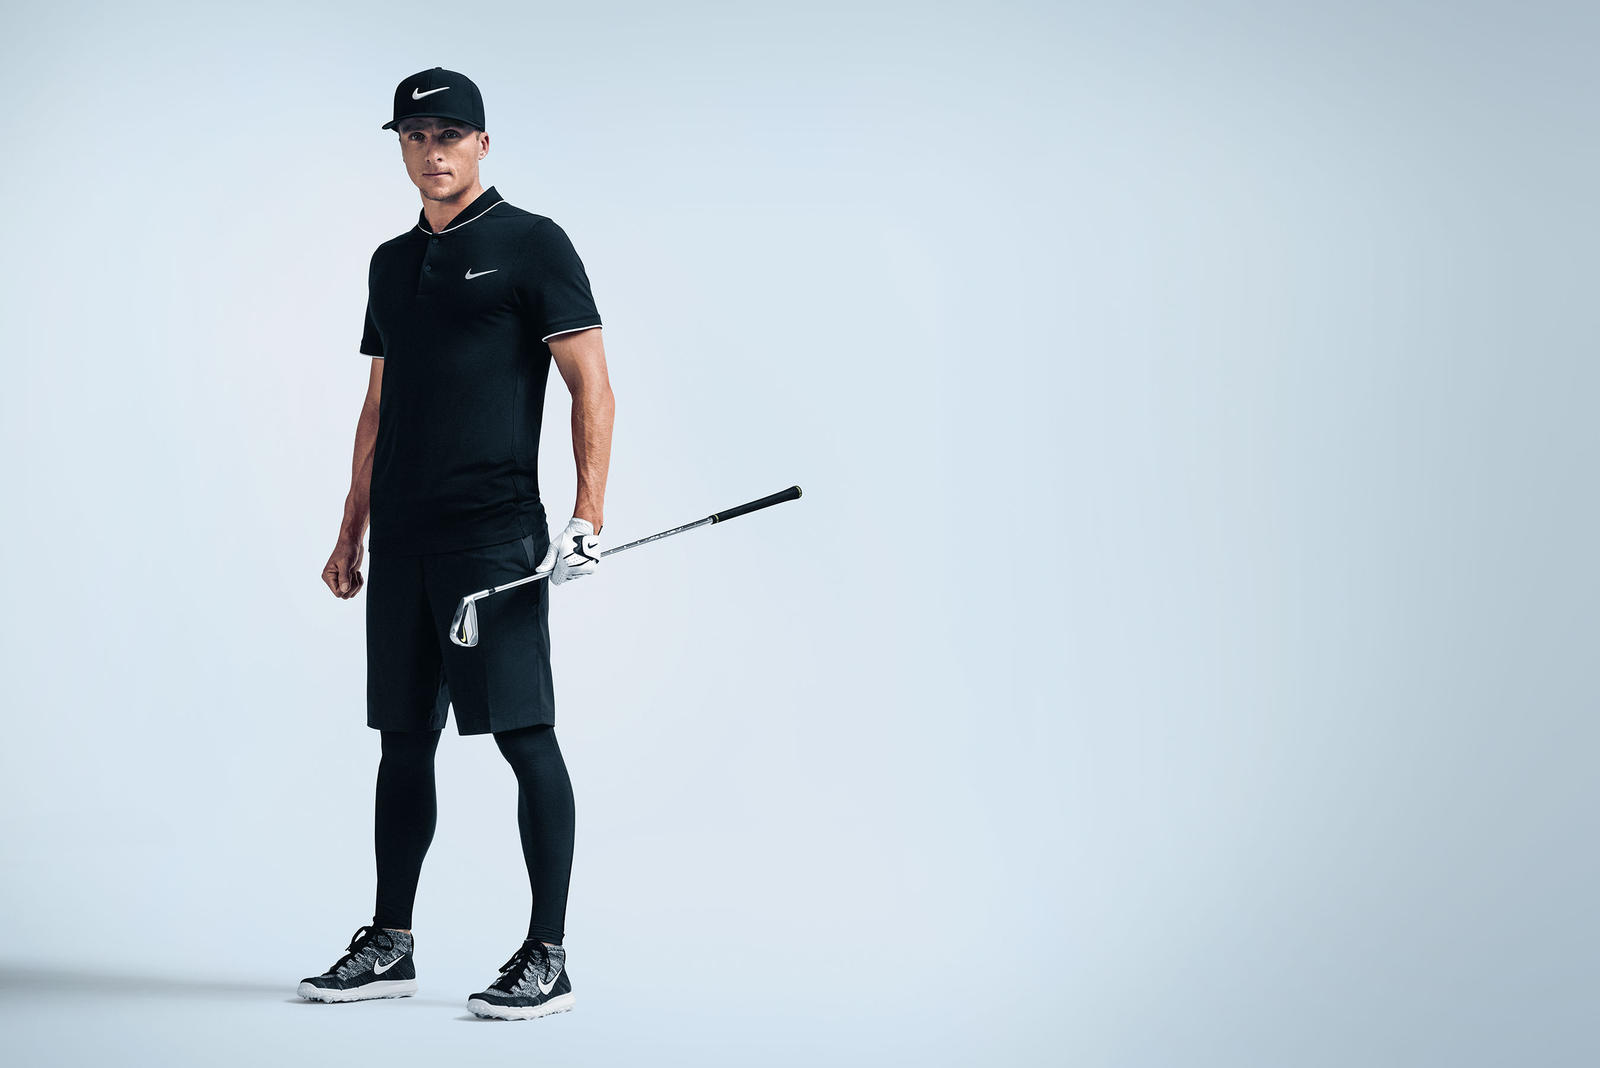 Tights Step Up To The Tee Nike News